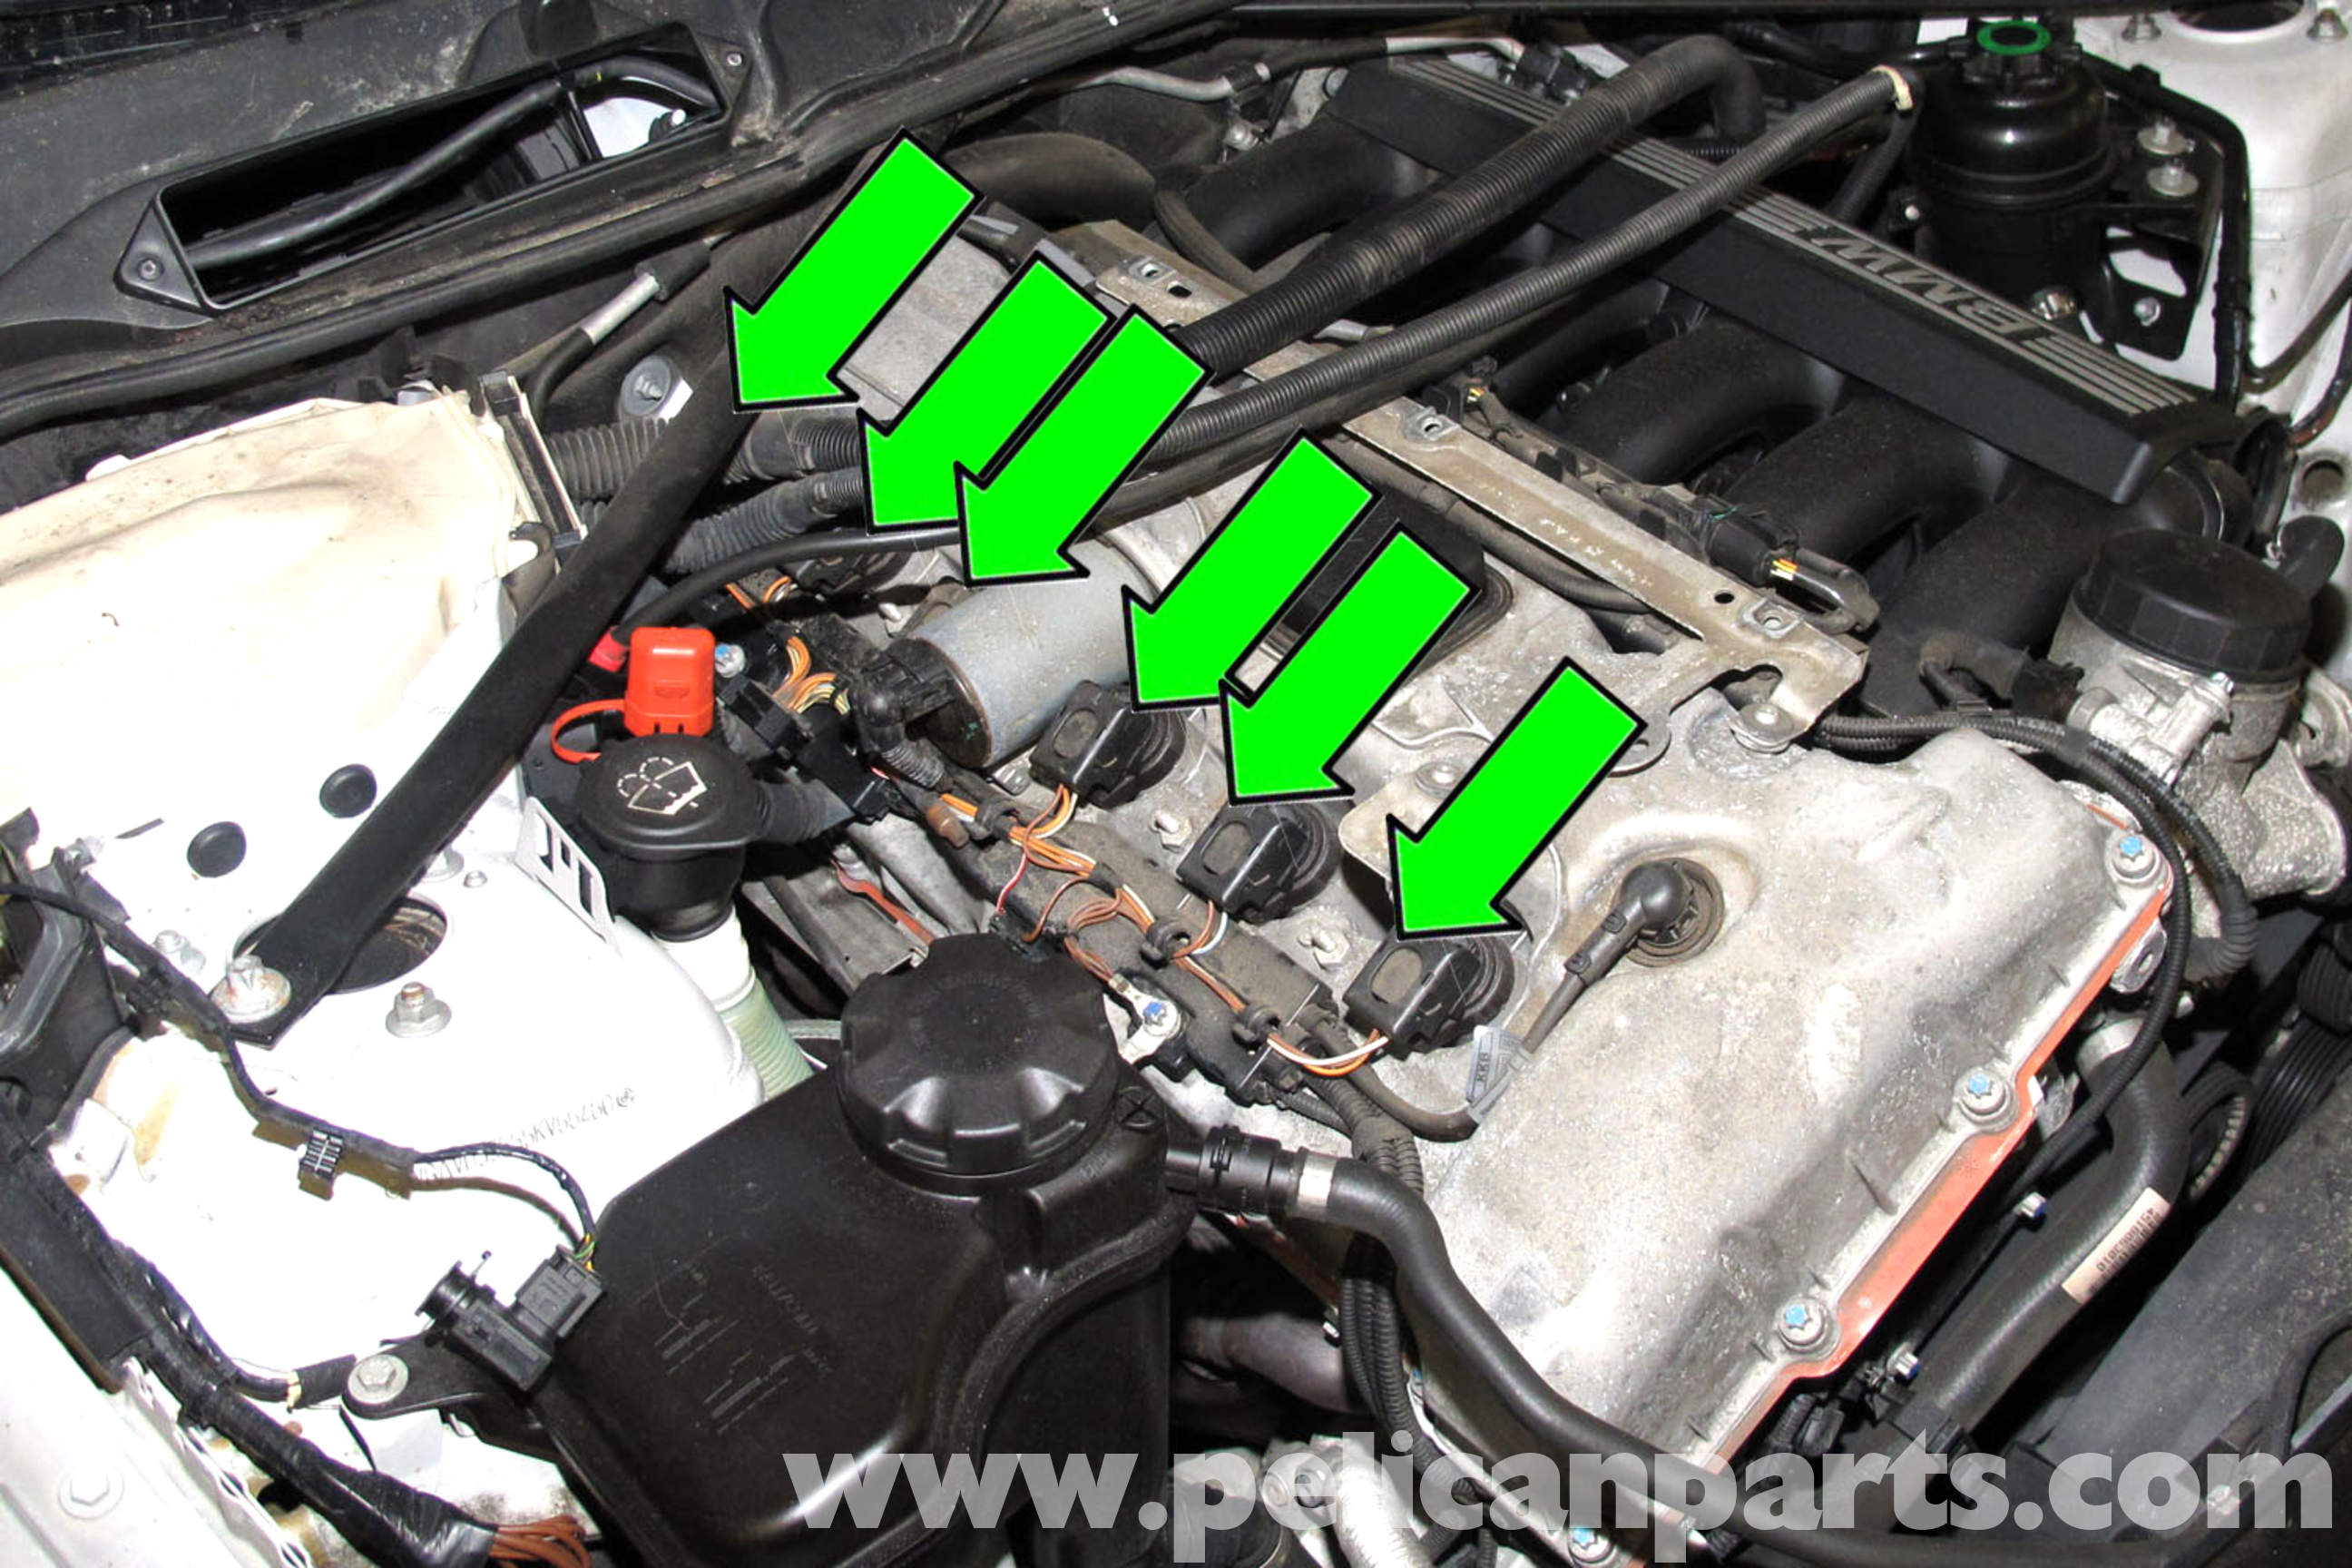 Bmw E90 Spark Plug And Coil Replacement E91 E92 E93